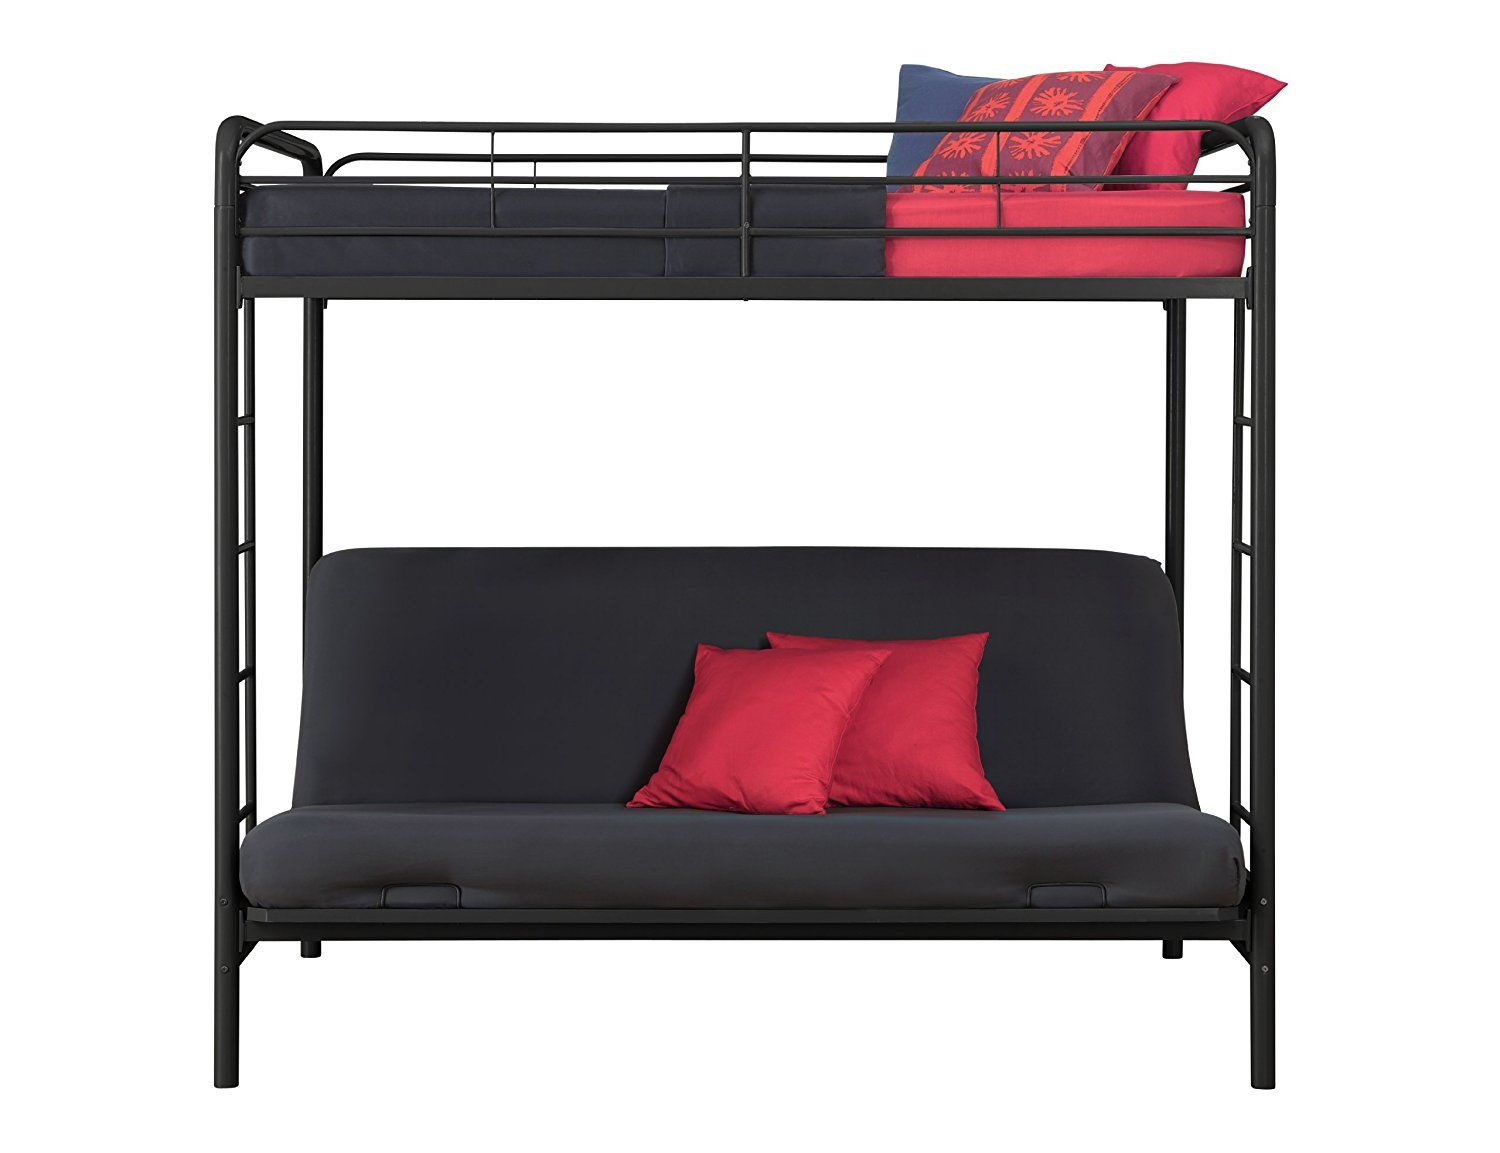 Full Futon Bunk Bed   Best Interior Paint Brands Check More At Http://